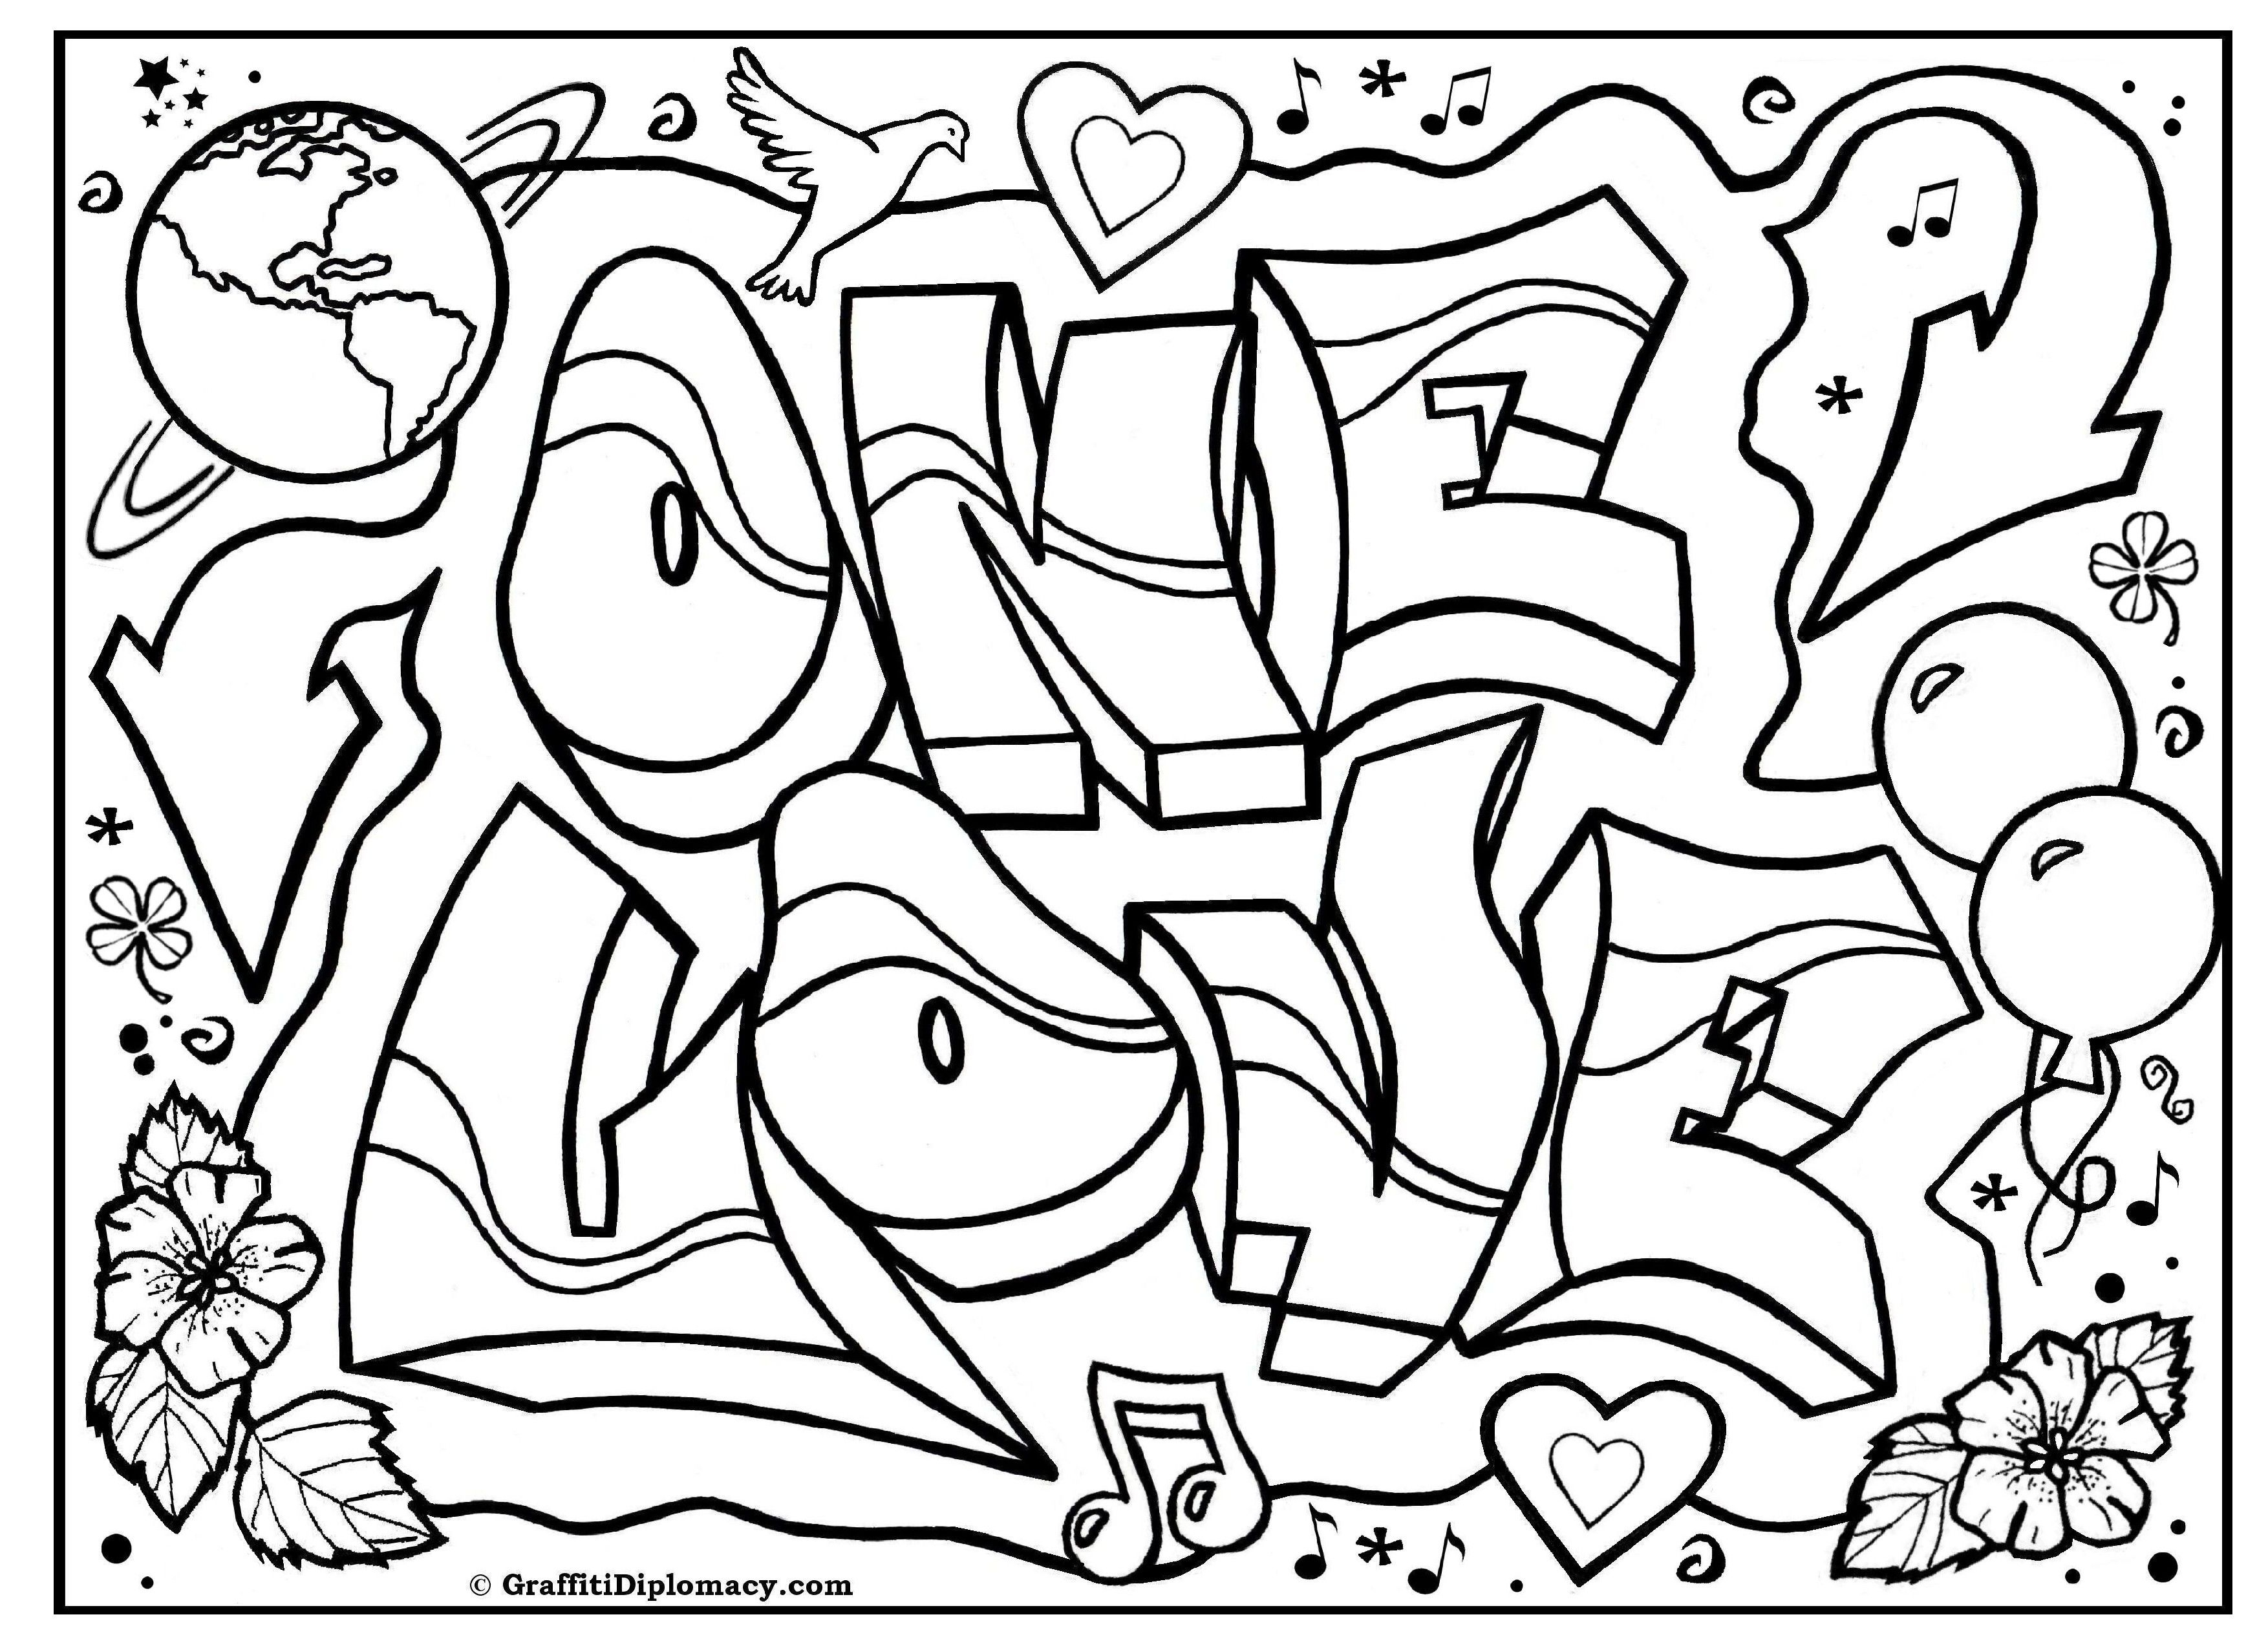 3508x2552 Free Stoner Coloring Page From Chronic Crafter New Coloring Sheets